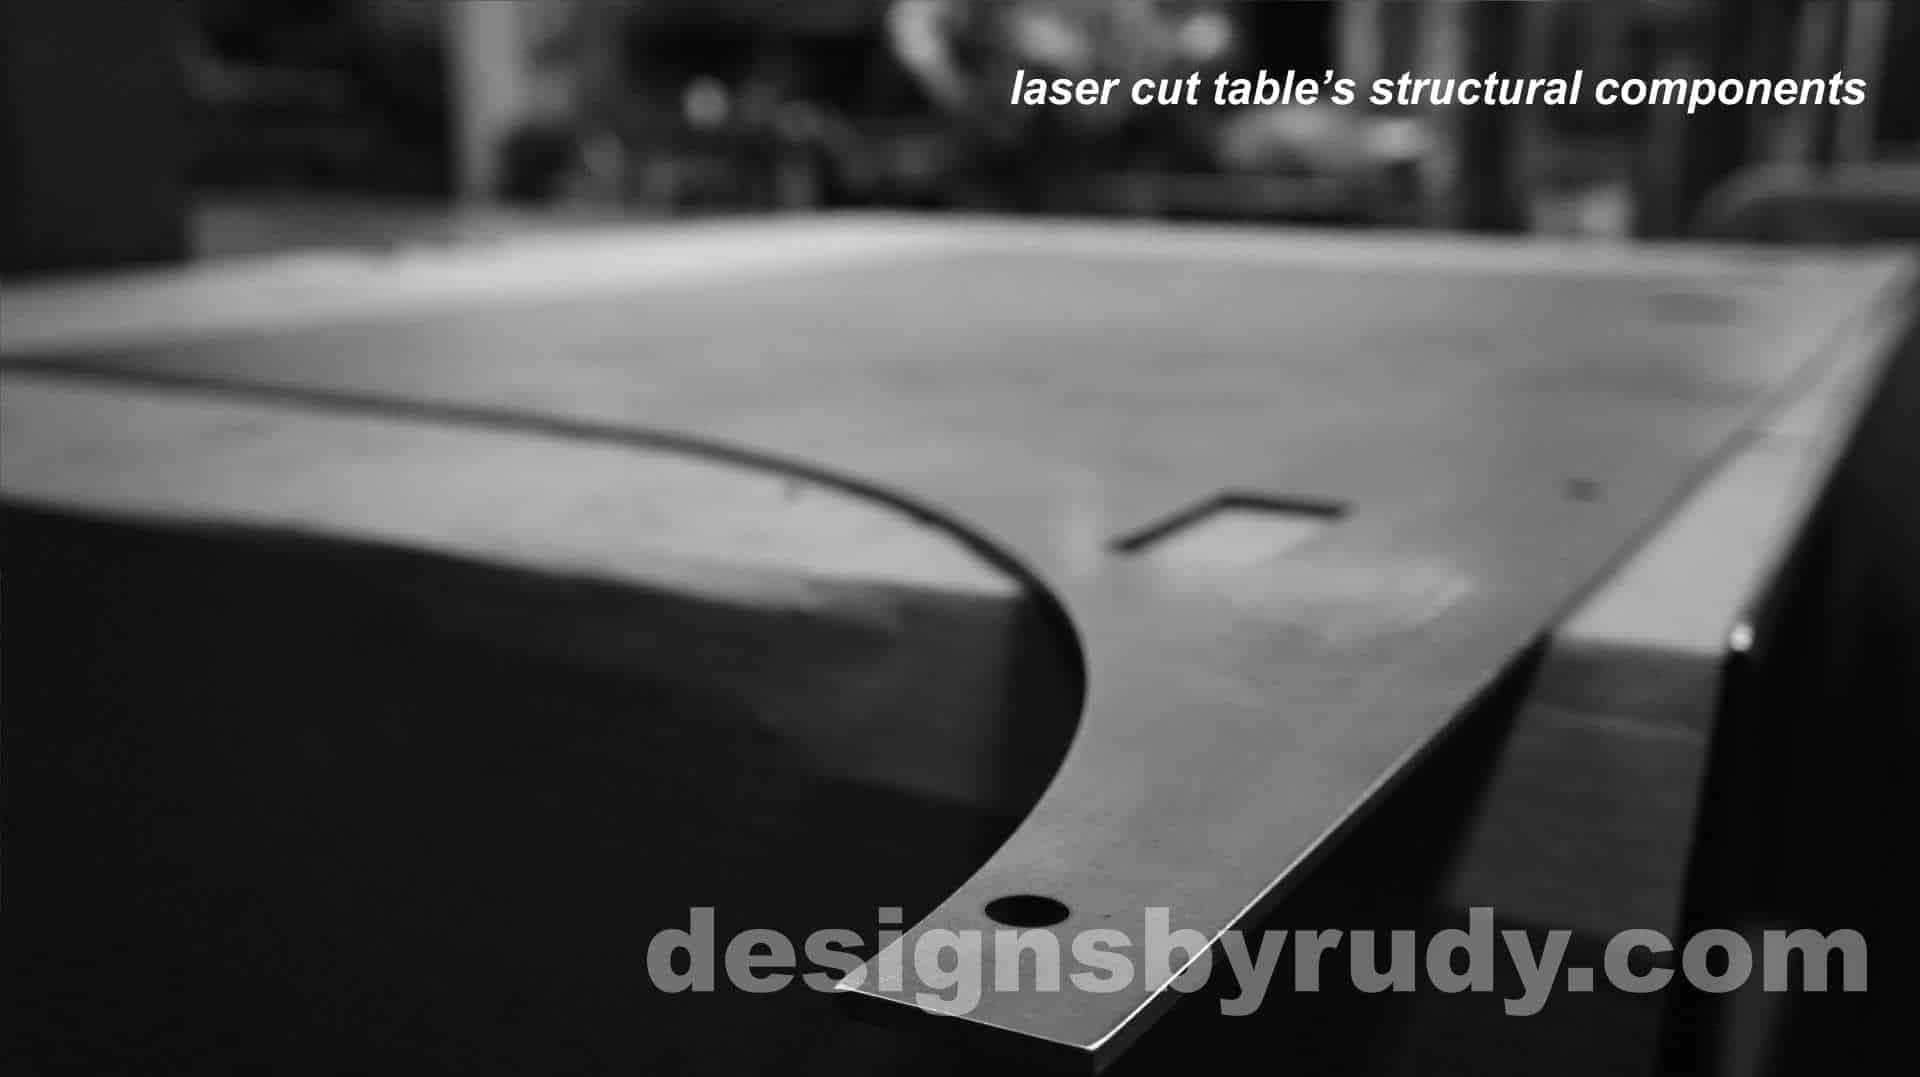 Conference room table, Designs by Rudy, laser cut structural components